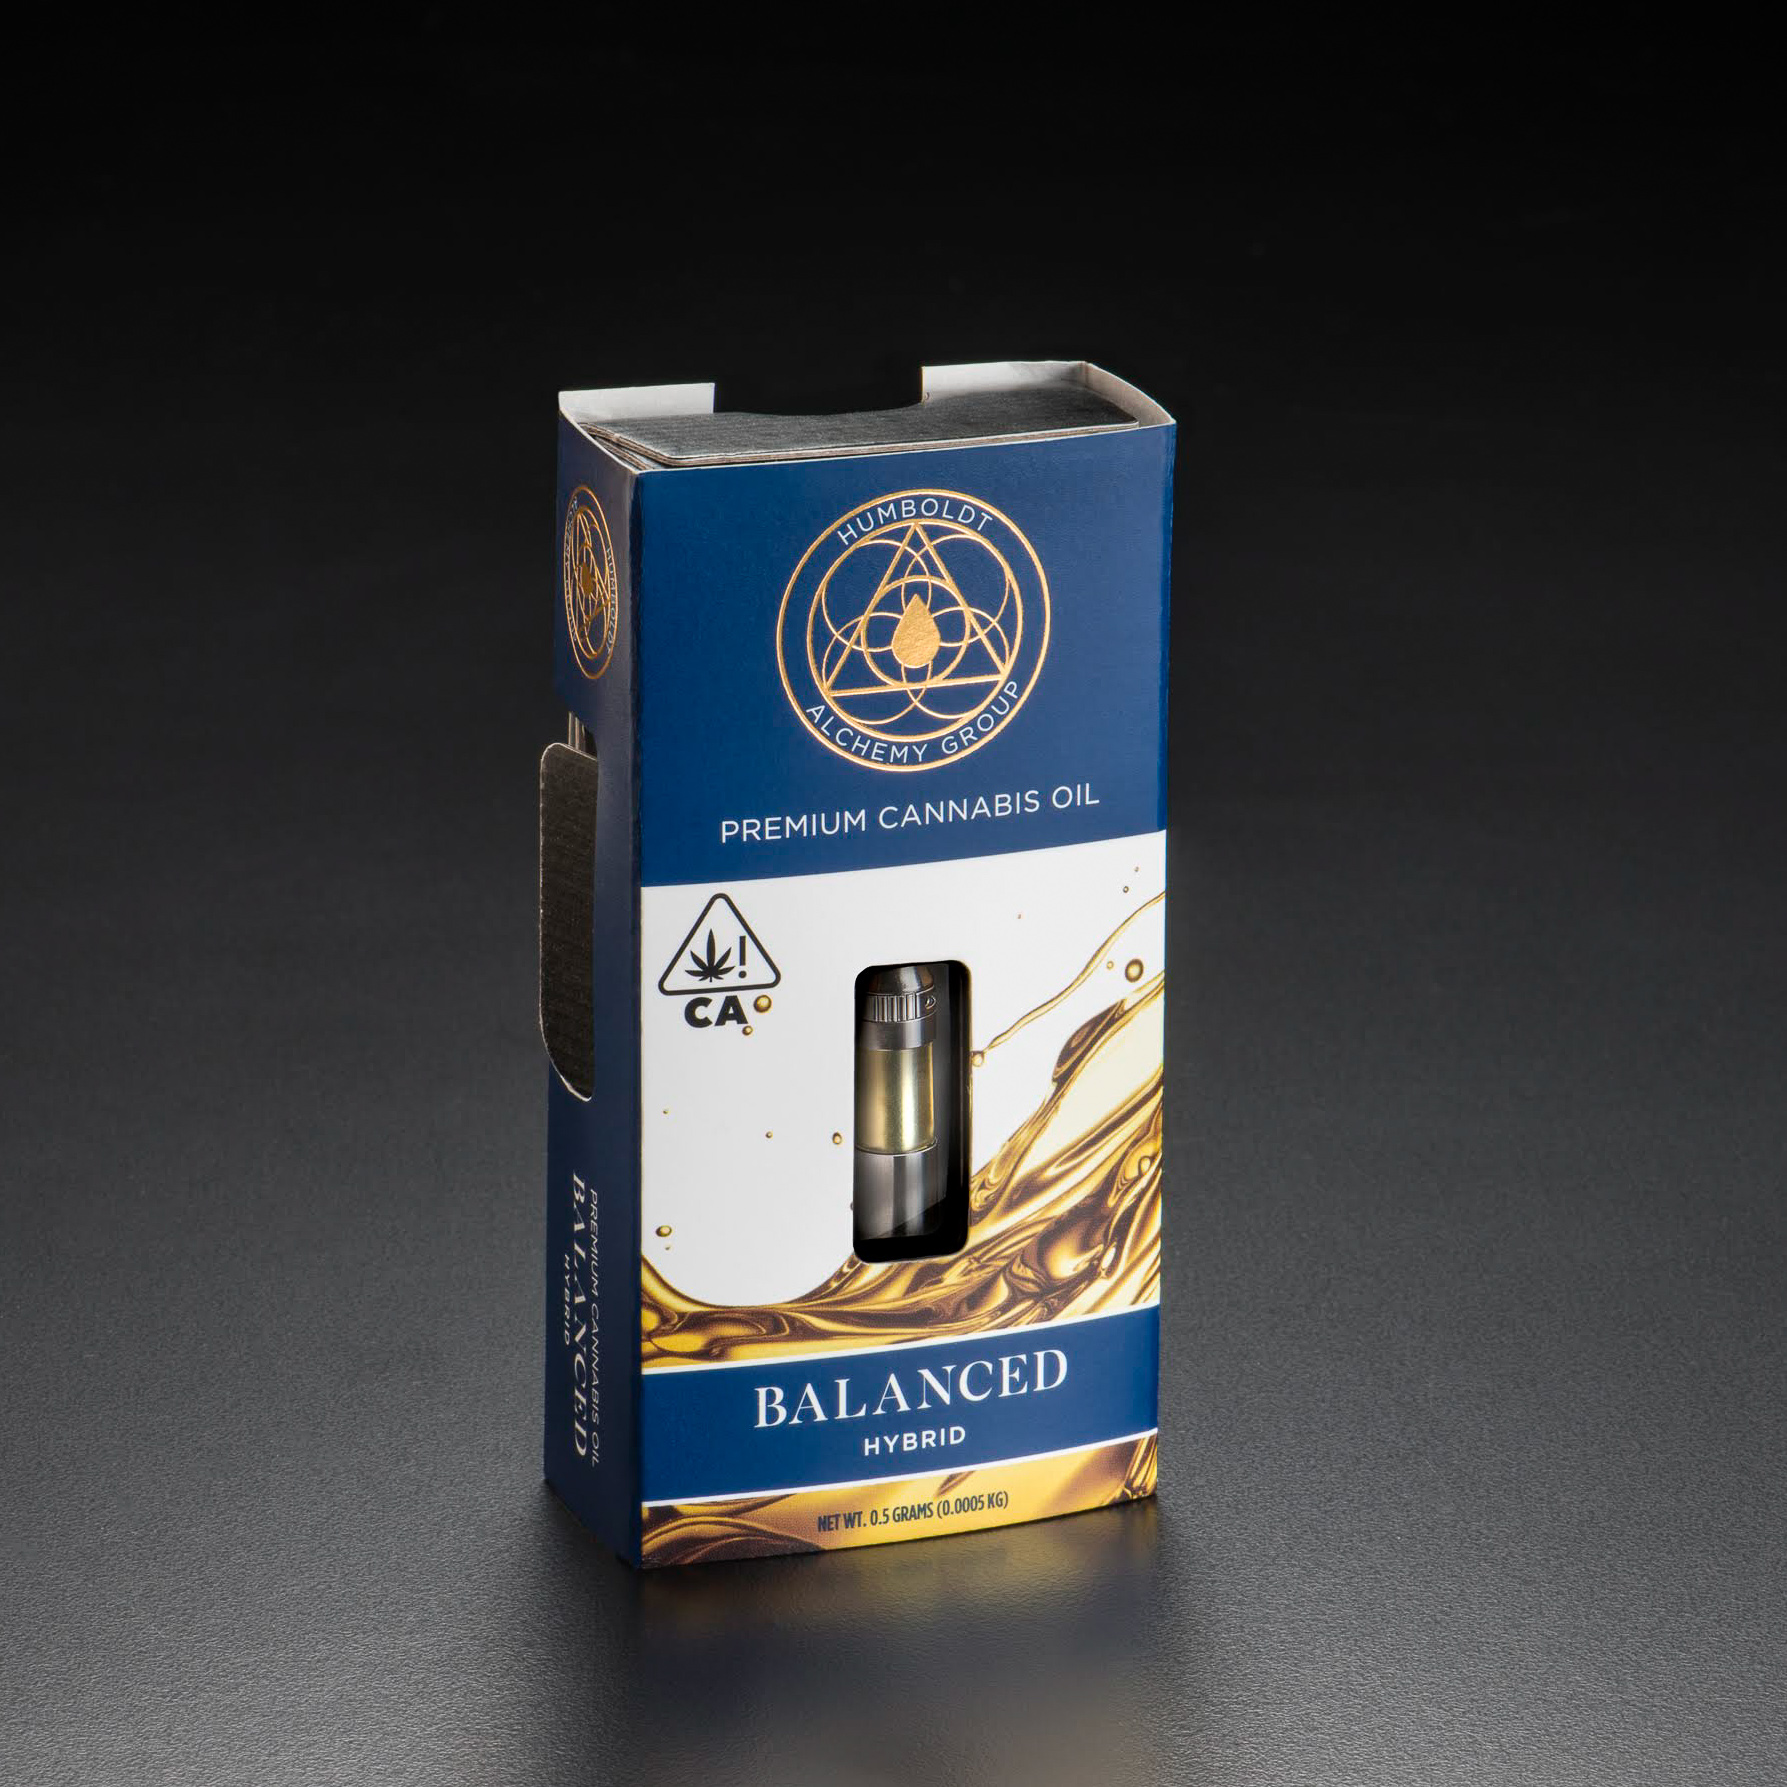 Balanced - Balanced offers a grounding experience, bringing you back to center. Featuring the terpene profile of Super Fruit. To learn more explore our Strain Library.We take great care in crafting our blend of CO2 extract, distillate, and true cannabis terpenes to offer a high quality and consistent experience.During our process we capture cannabis terpenes and introduce them back into the oil to create depth and flavor in our blends. There are no additives or synthetic terpenes in our products.